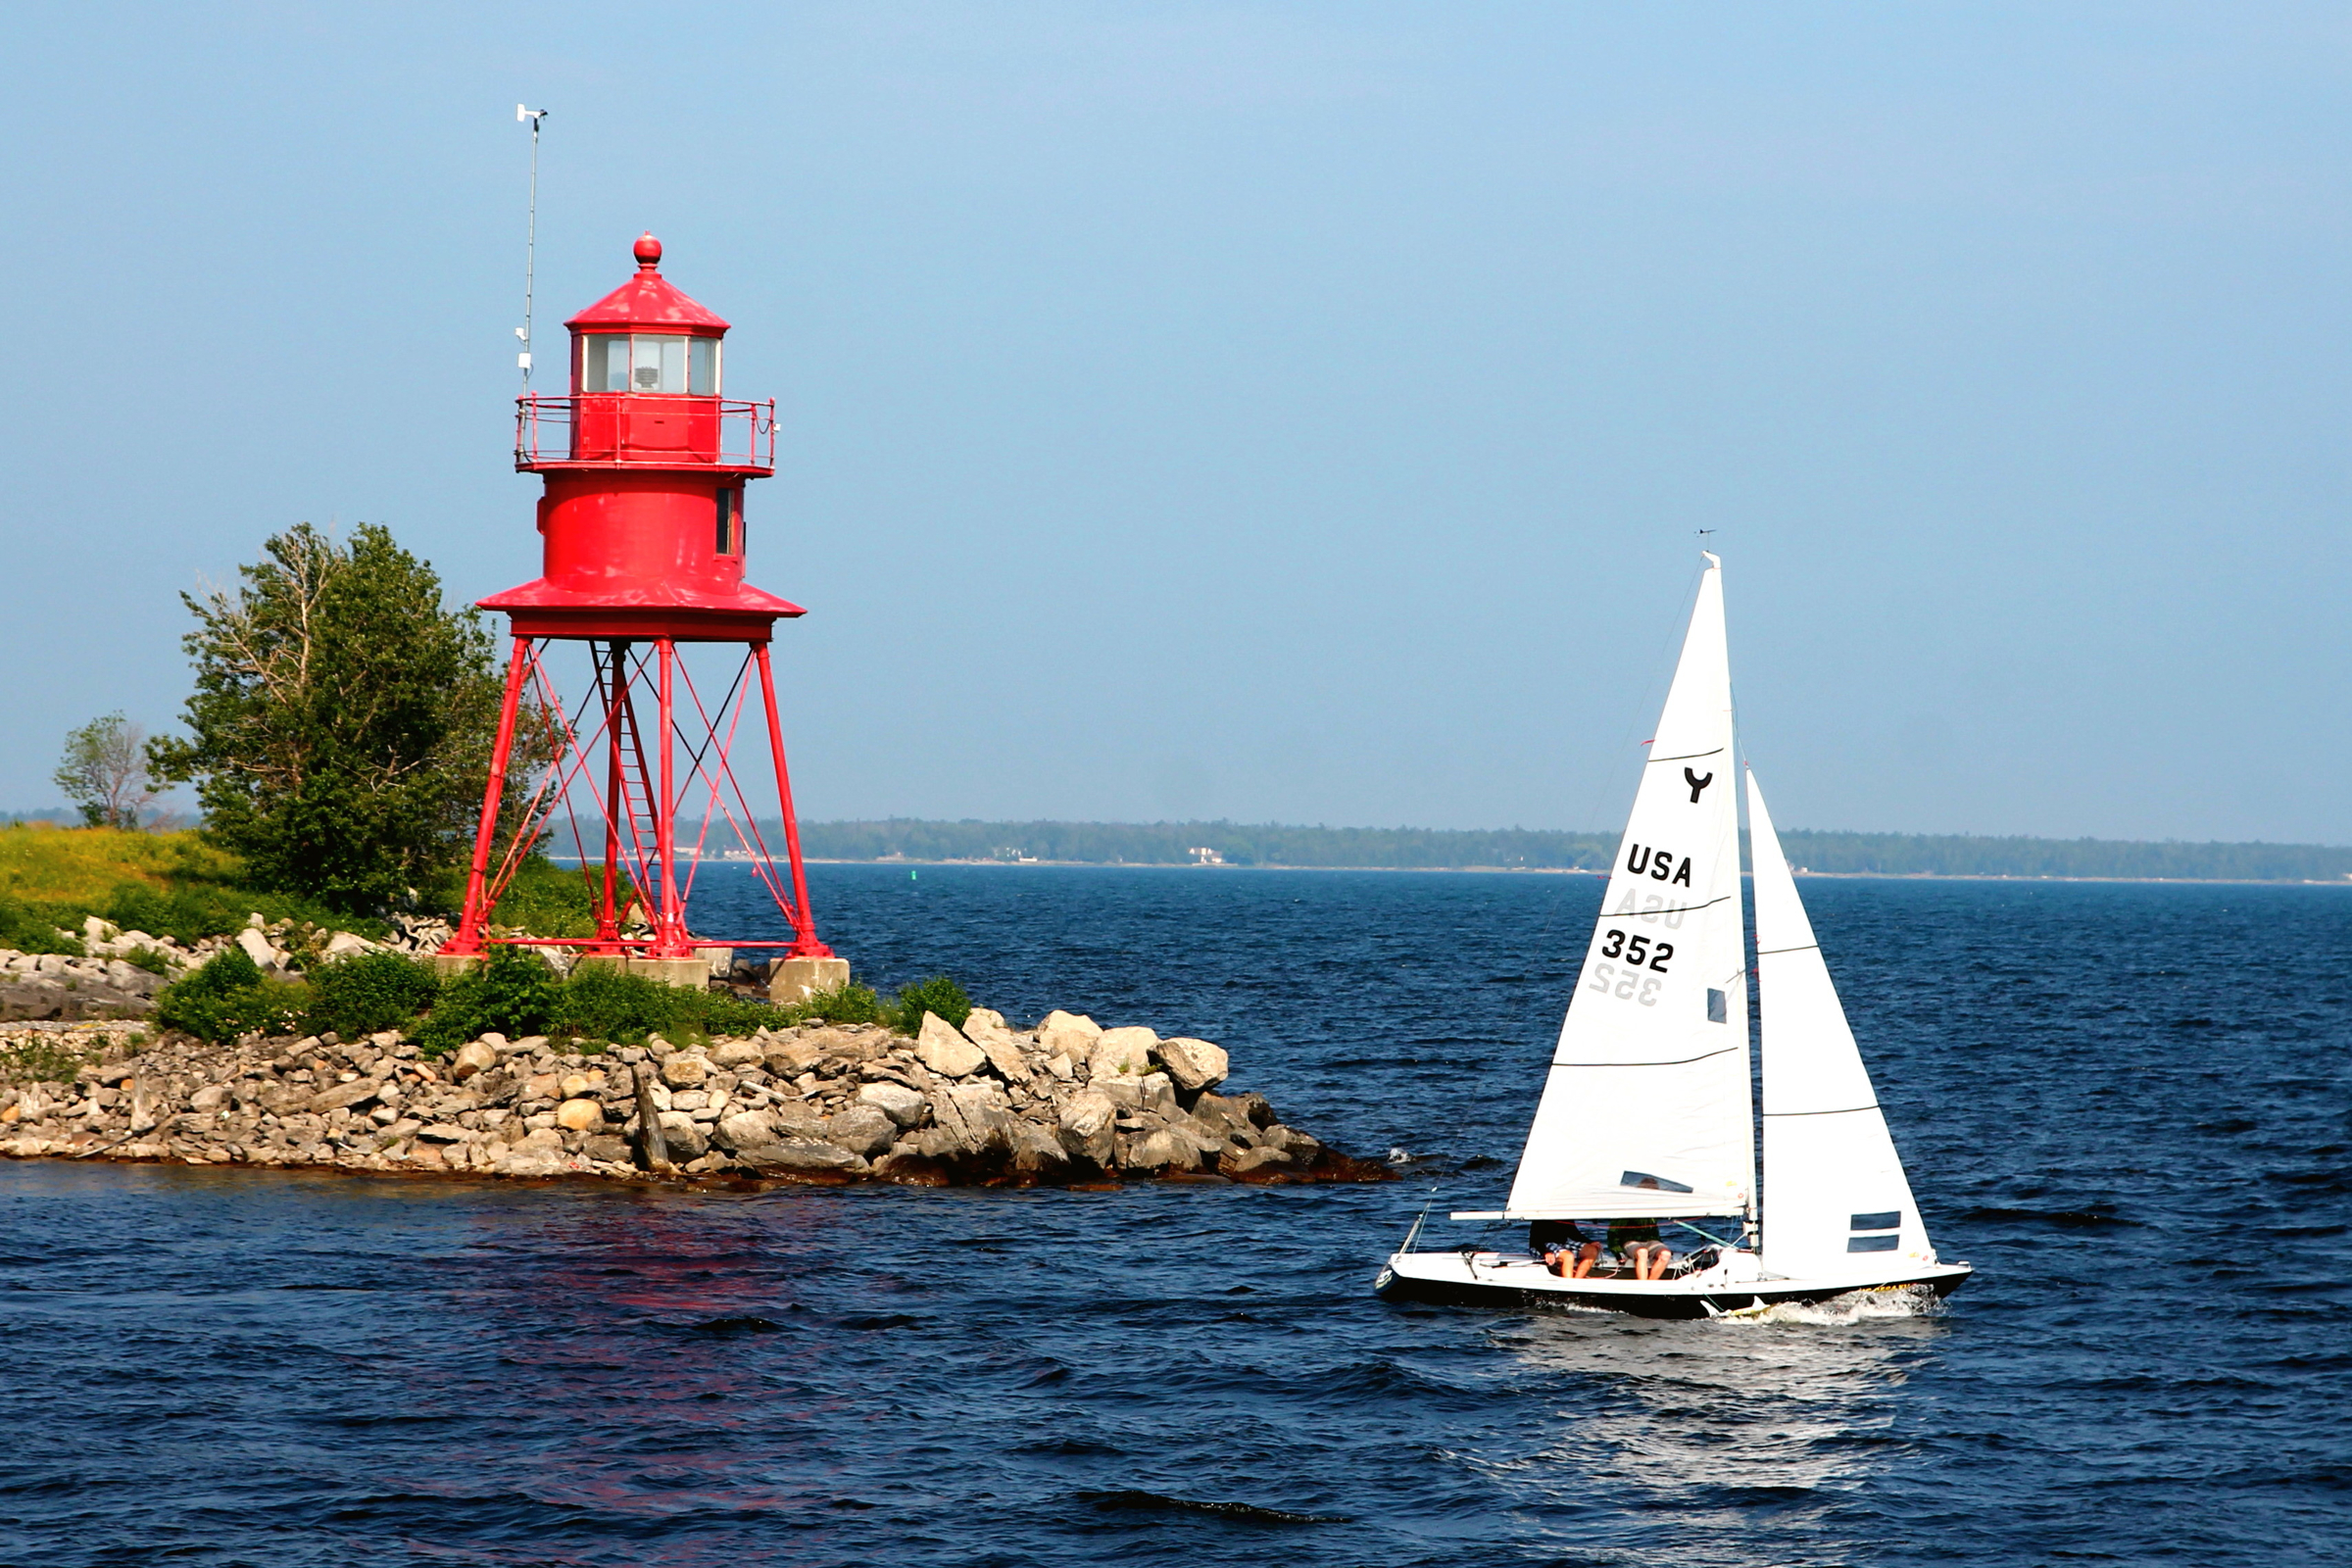 Michigan-ALPENA-Thunder-Bay-River-Lighthouse.JPG?mtime=20180412101858#asset:101395